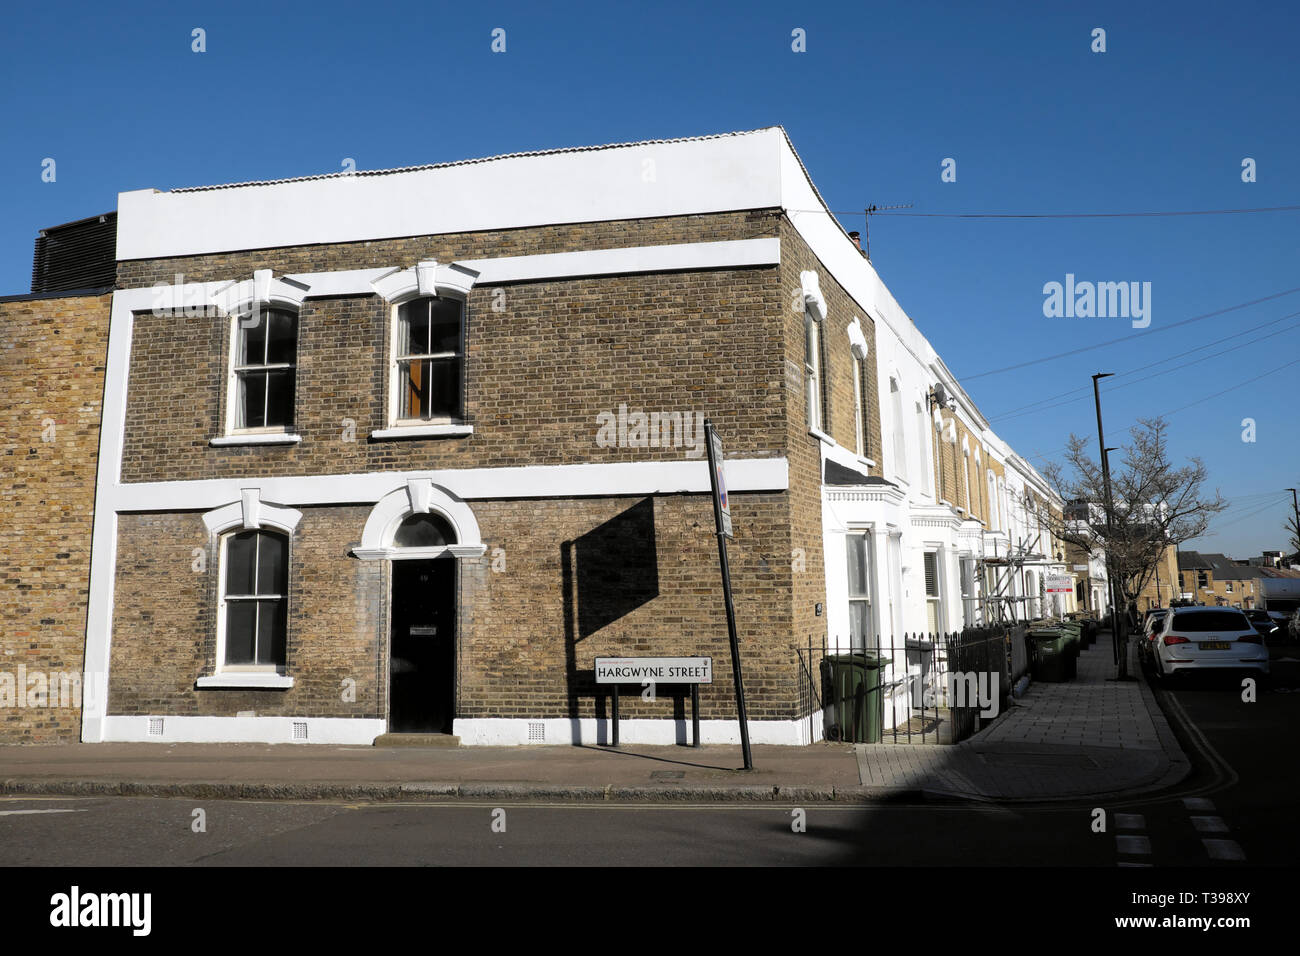 House on the corner of Hargwyne Street at the end of a row of terraced housing on Pulross Road in Brixton, South London SW9 England UK  KATHY DEWITT - Stock Image